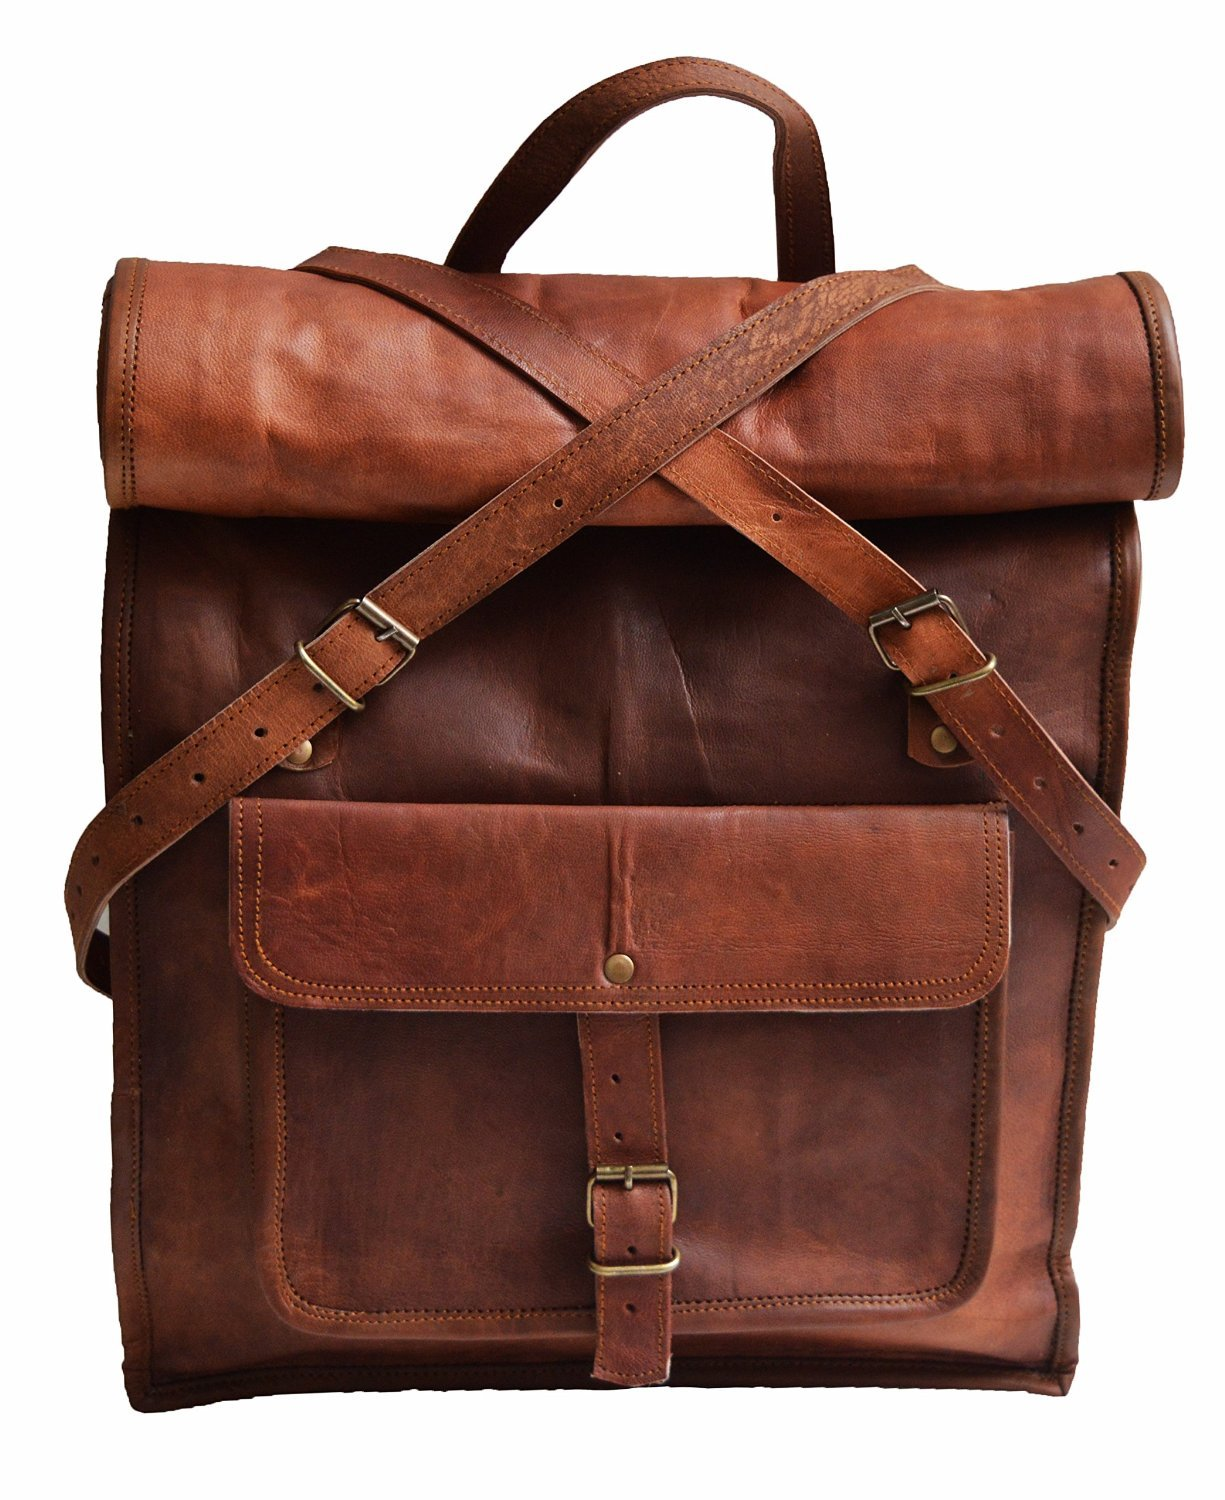 23 Large Genuine Leather Backpack for Laptop Travel roll top Rucksack for Men Women El cuero 22RO